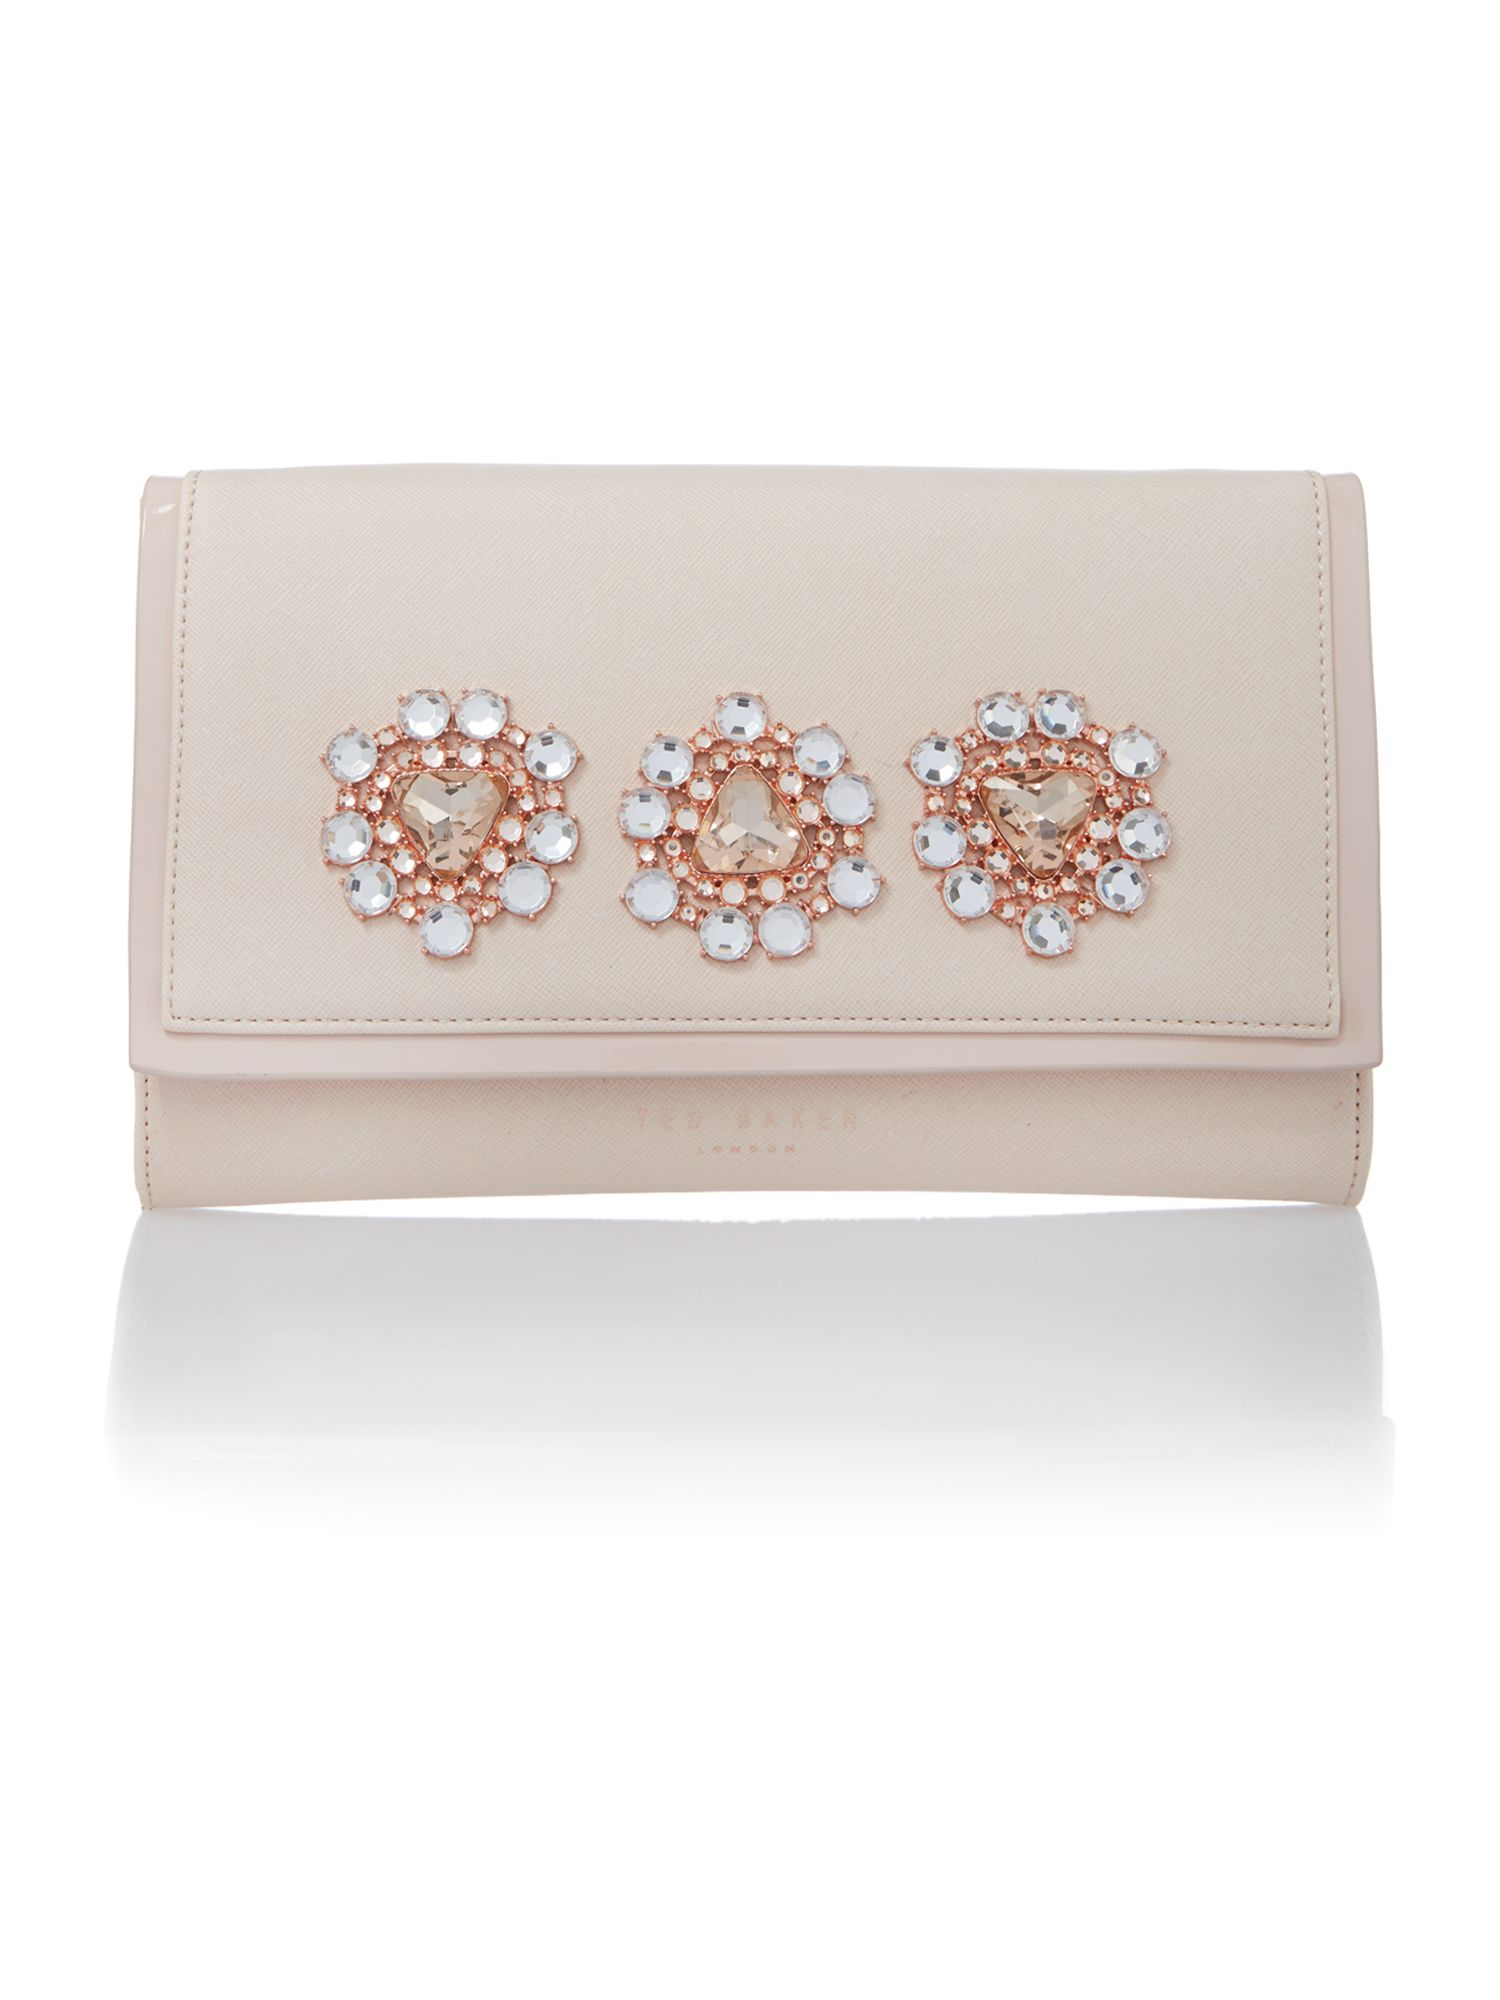 Nude medium jewel clutch bag